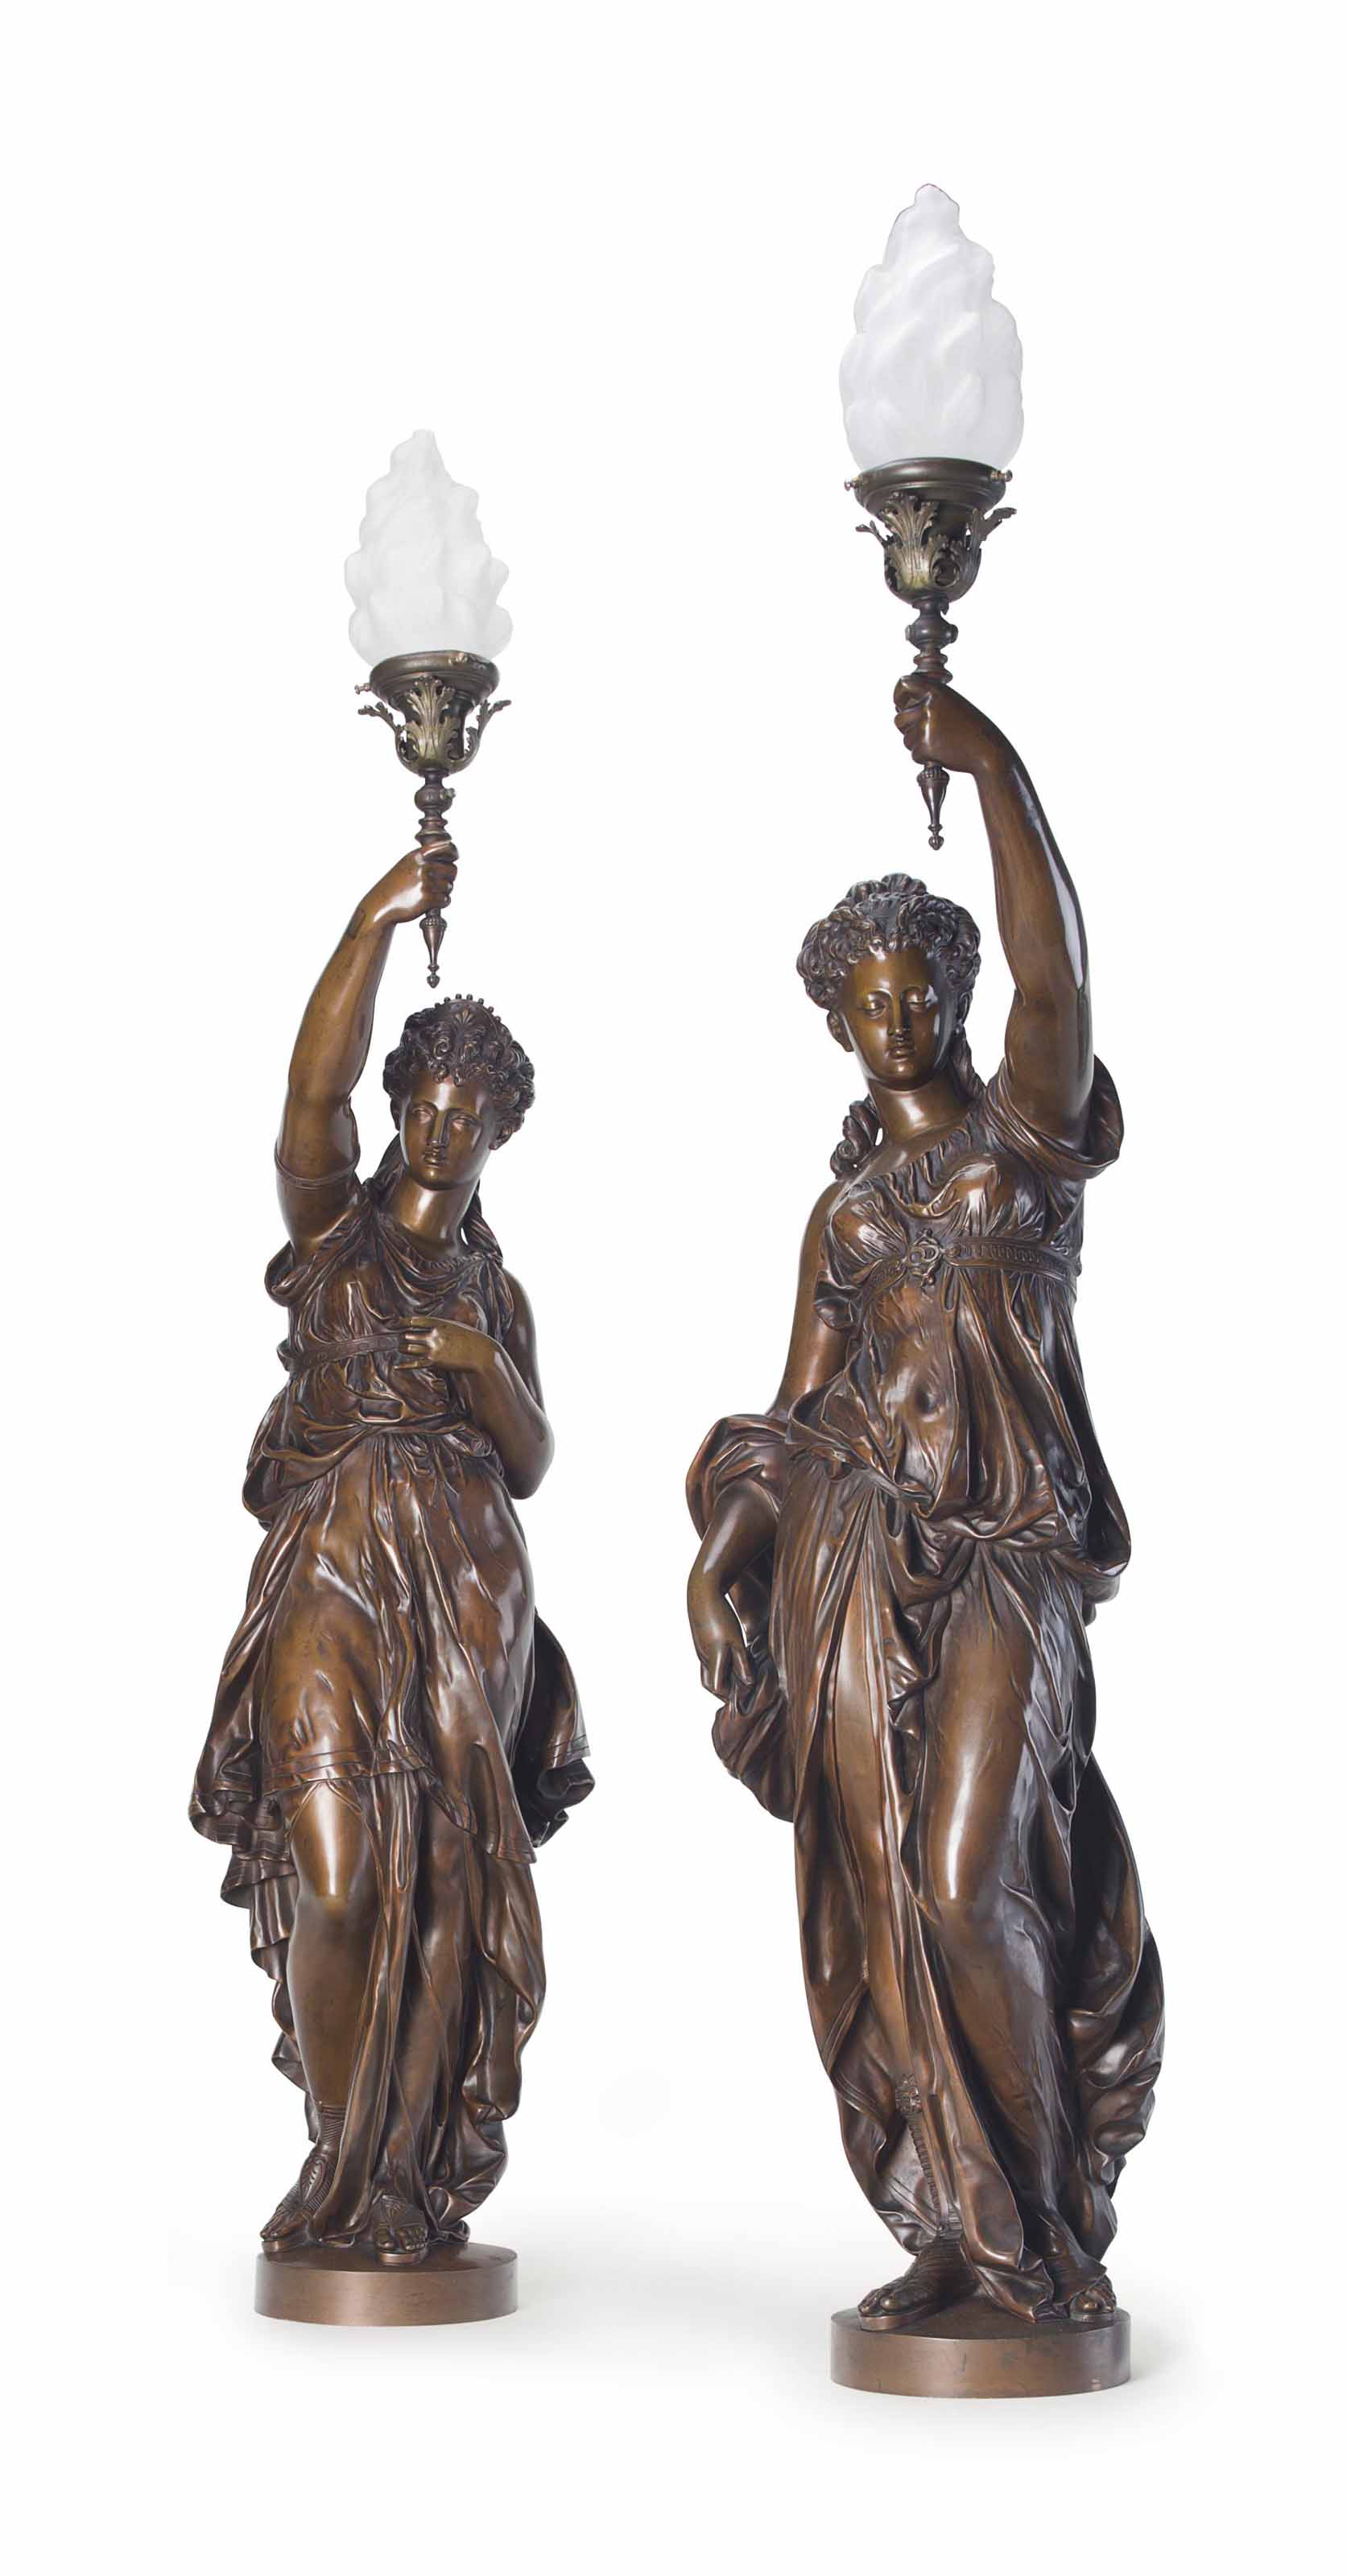 A PAIR OF LARGE FRENCH PATINATED-BRONZE TORCHÈRES